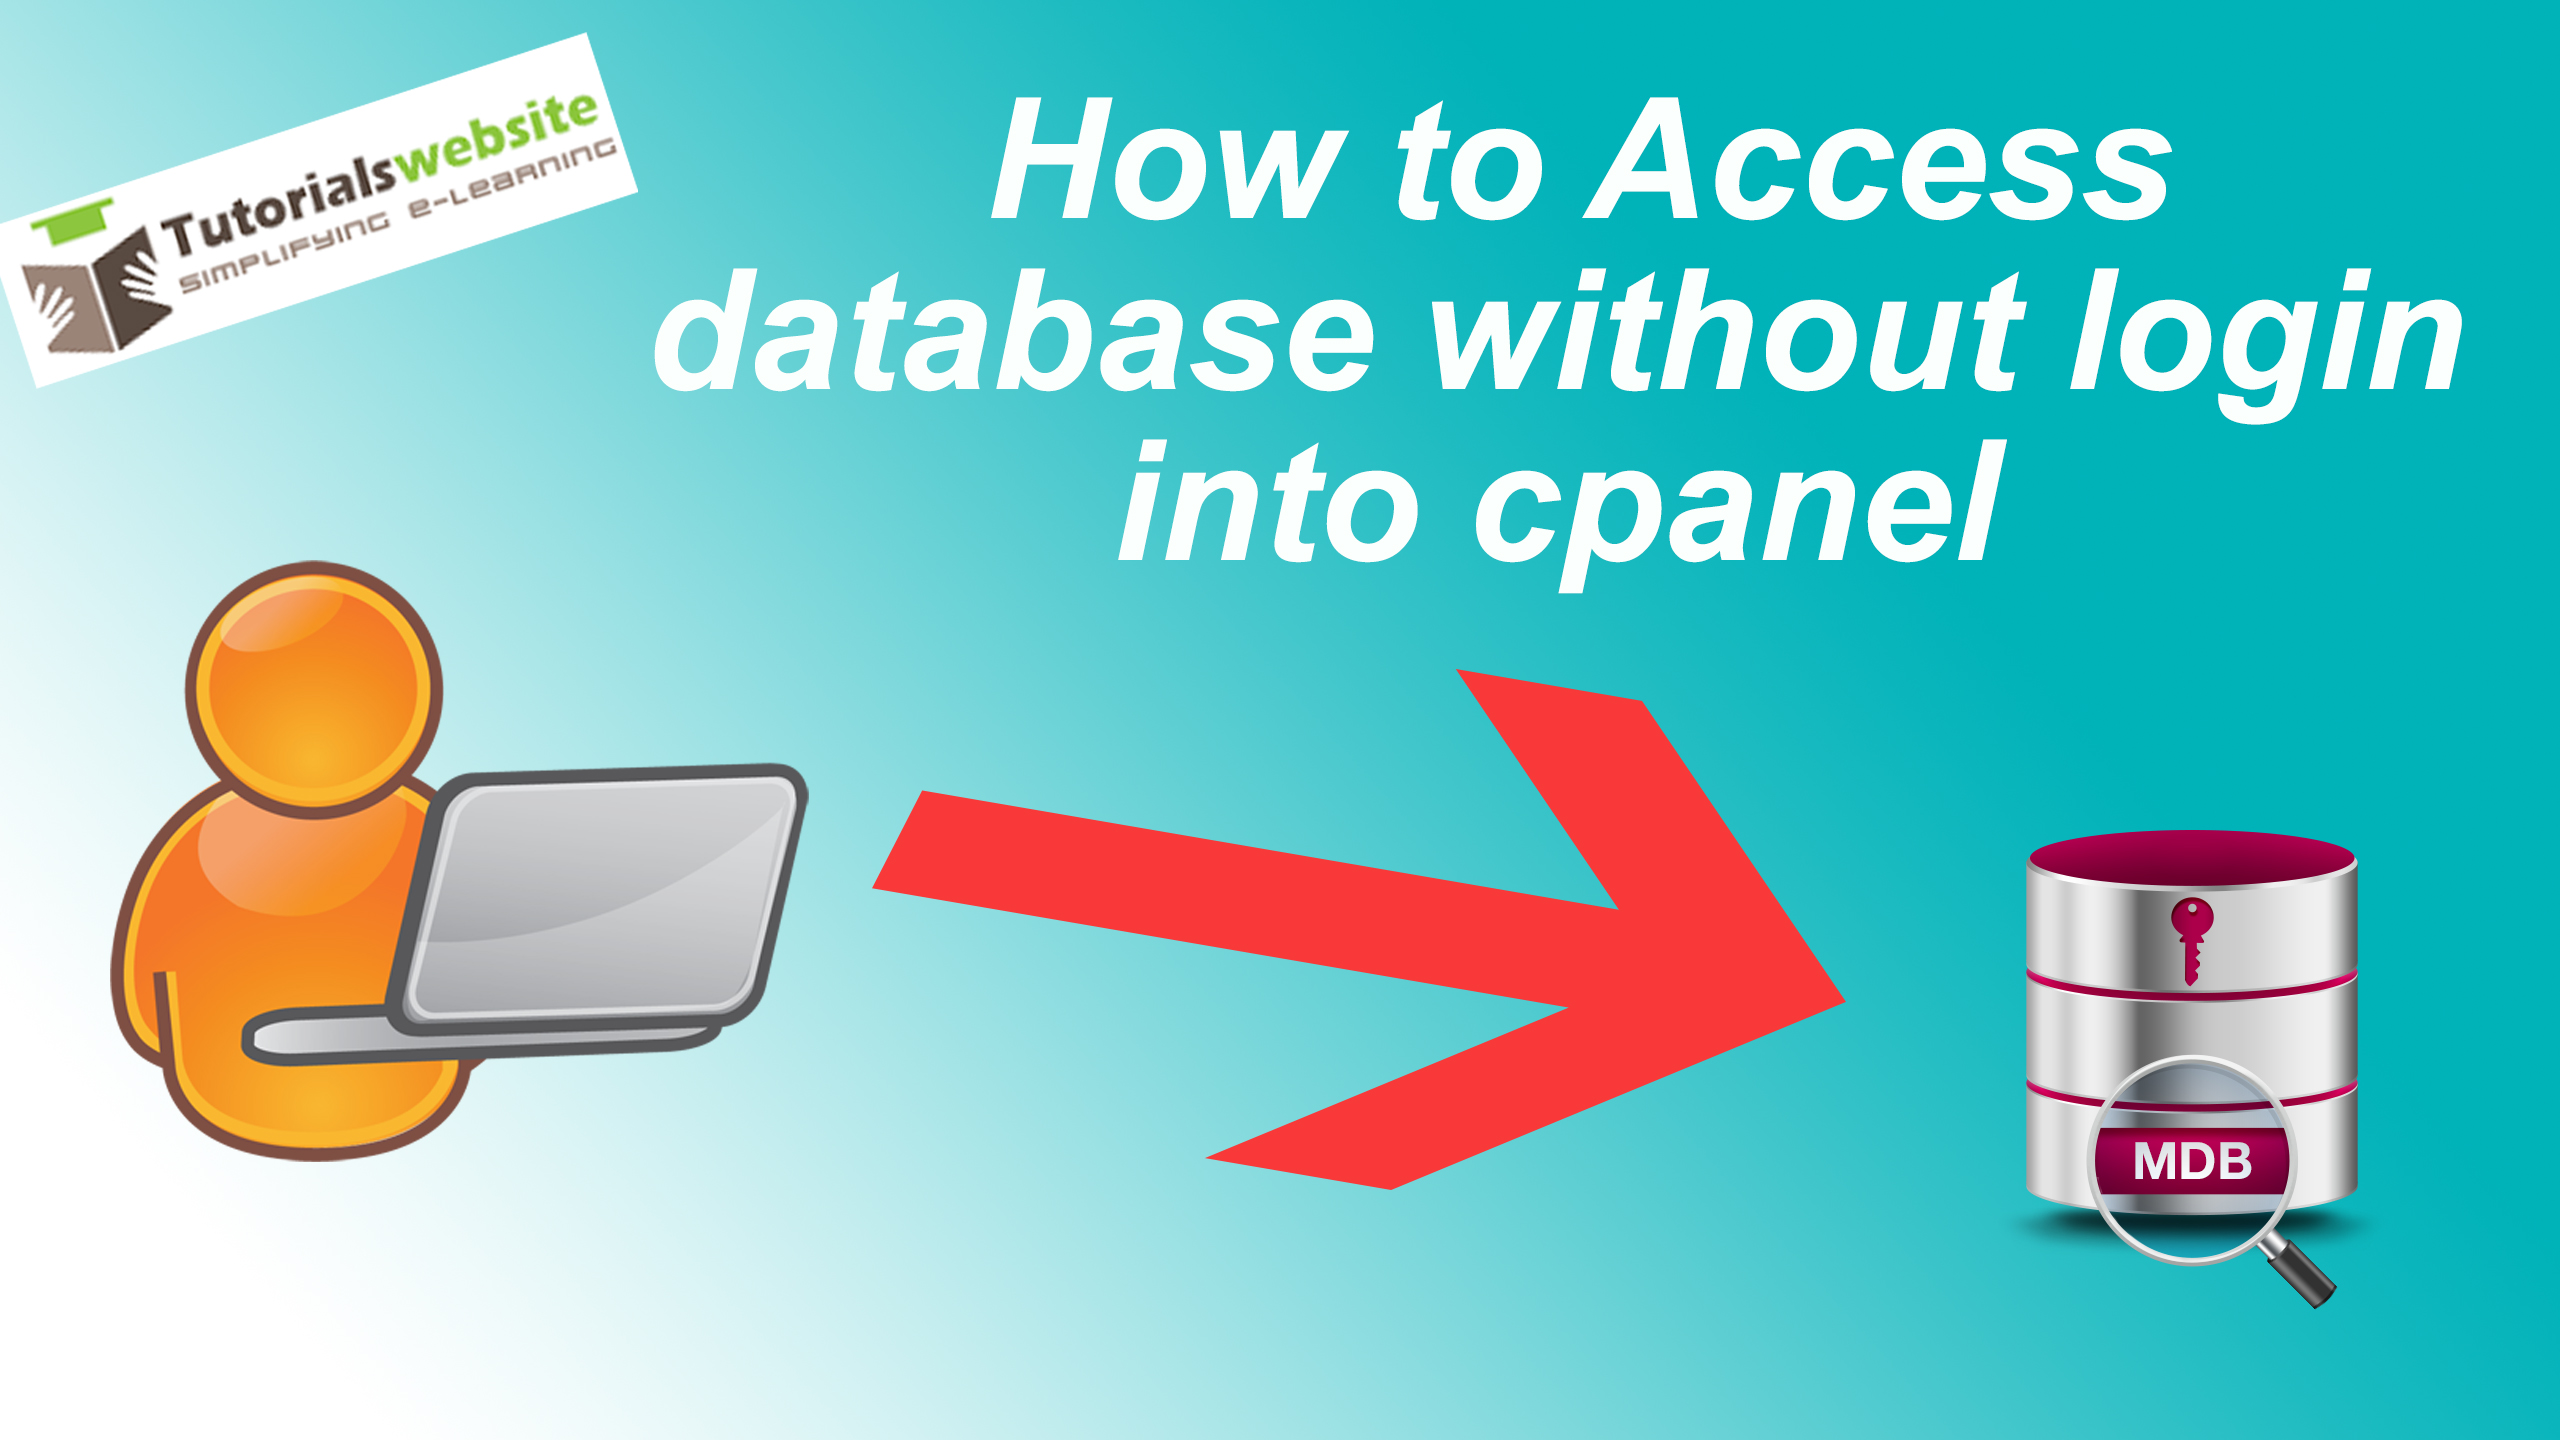 How to access database without login into cpanel from my domain name